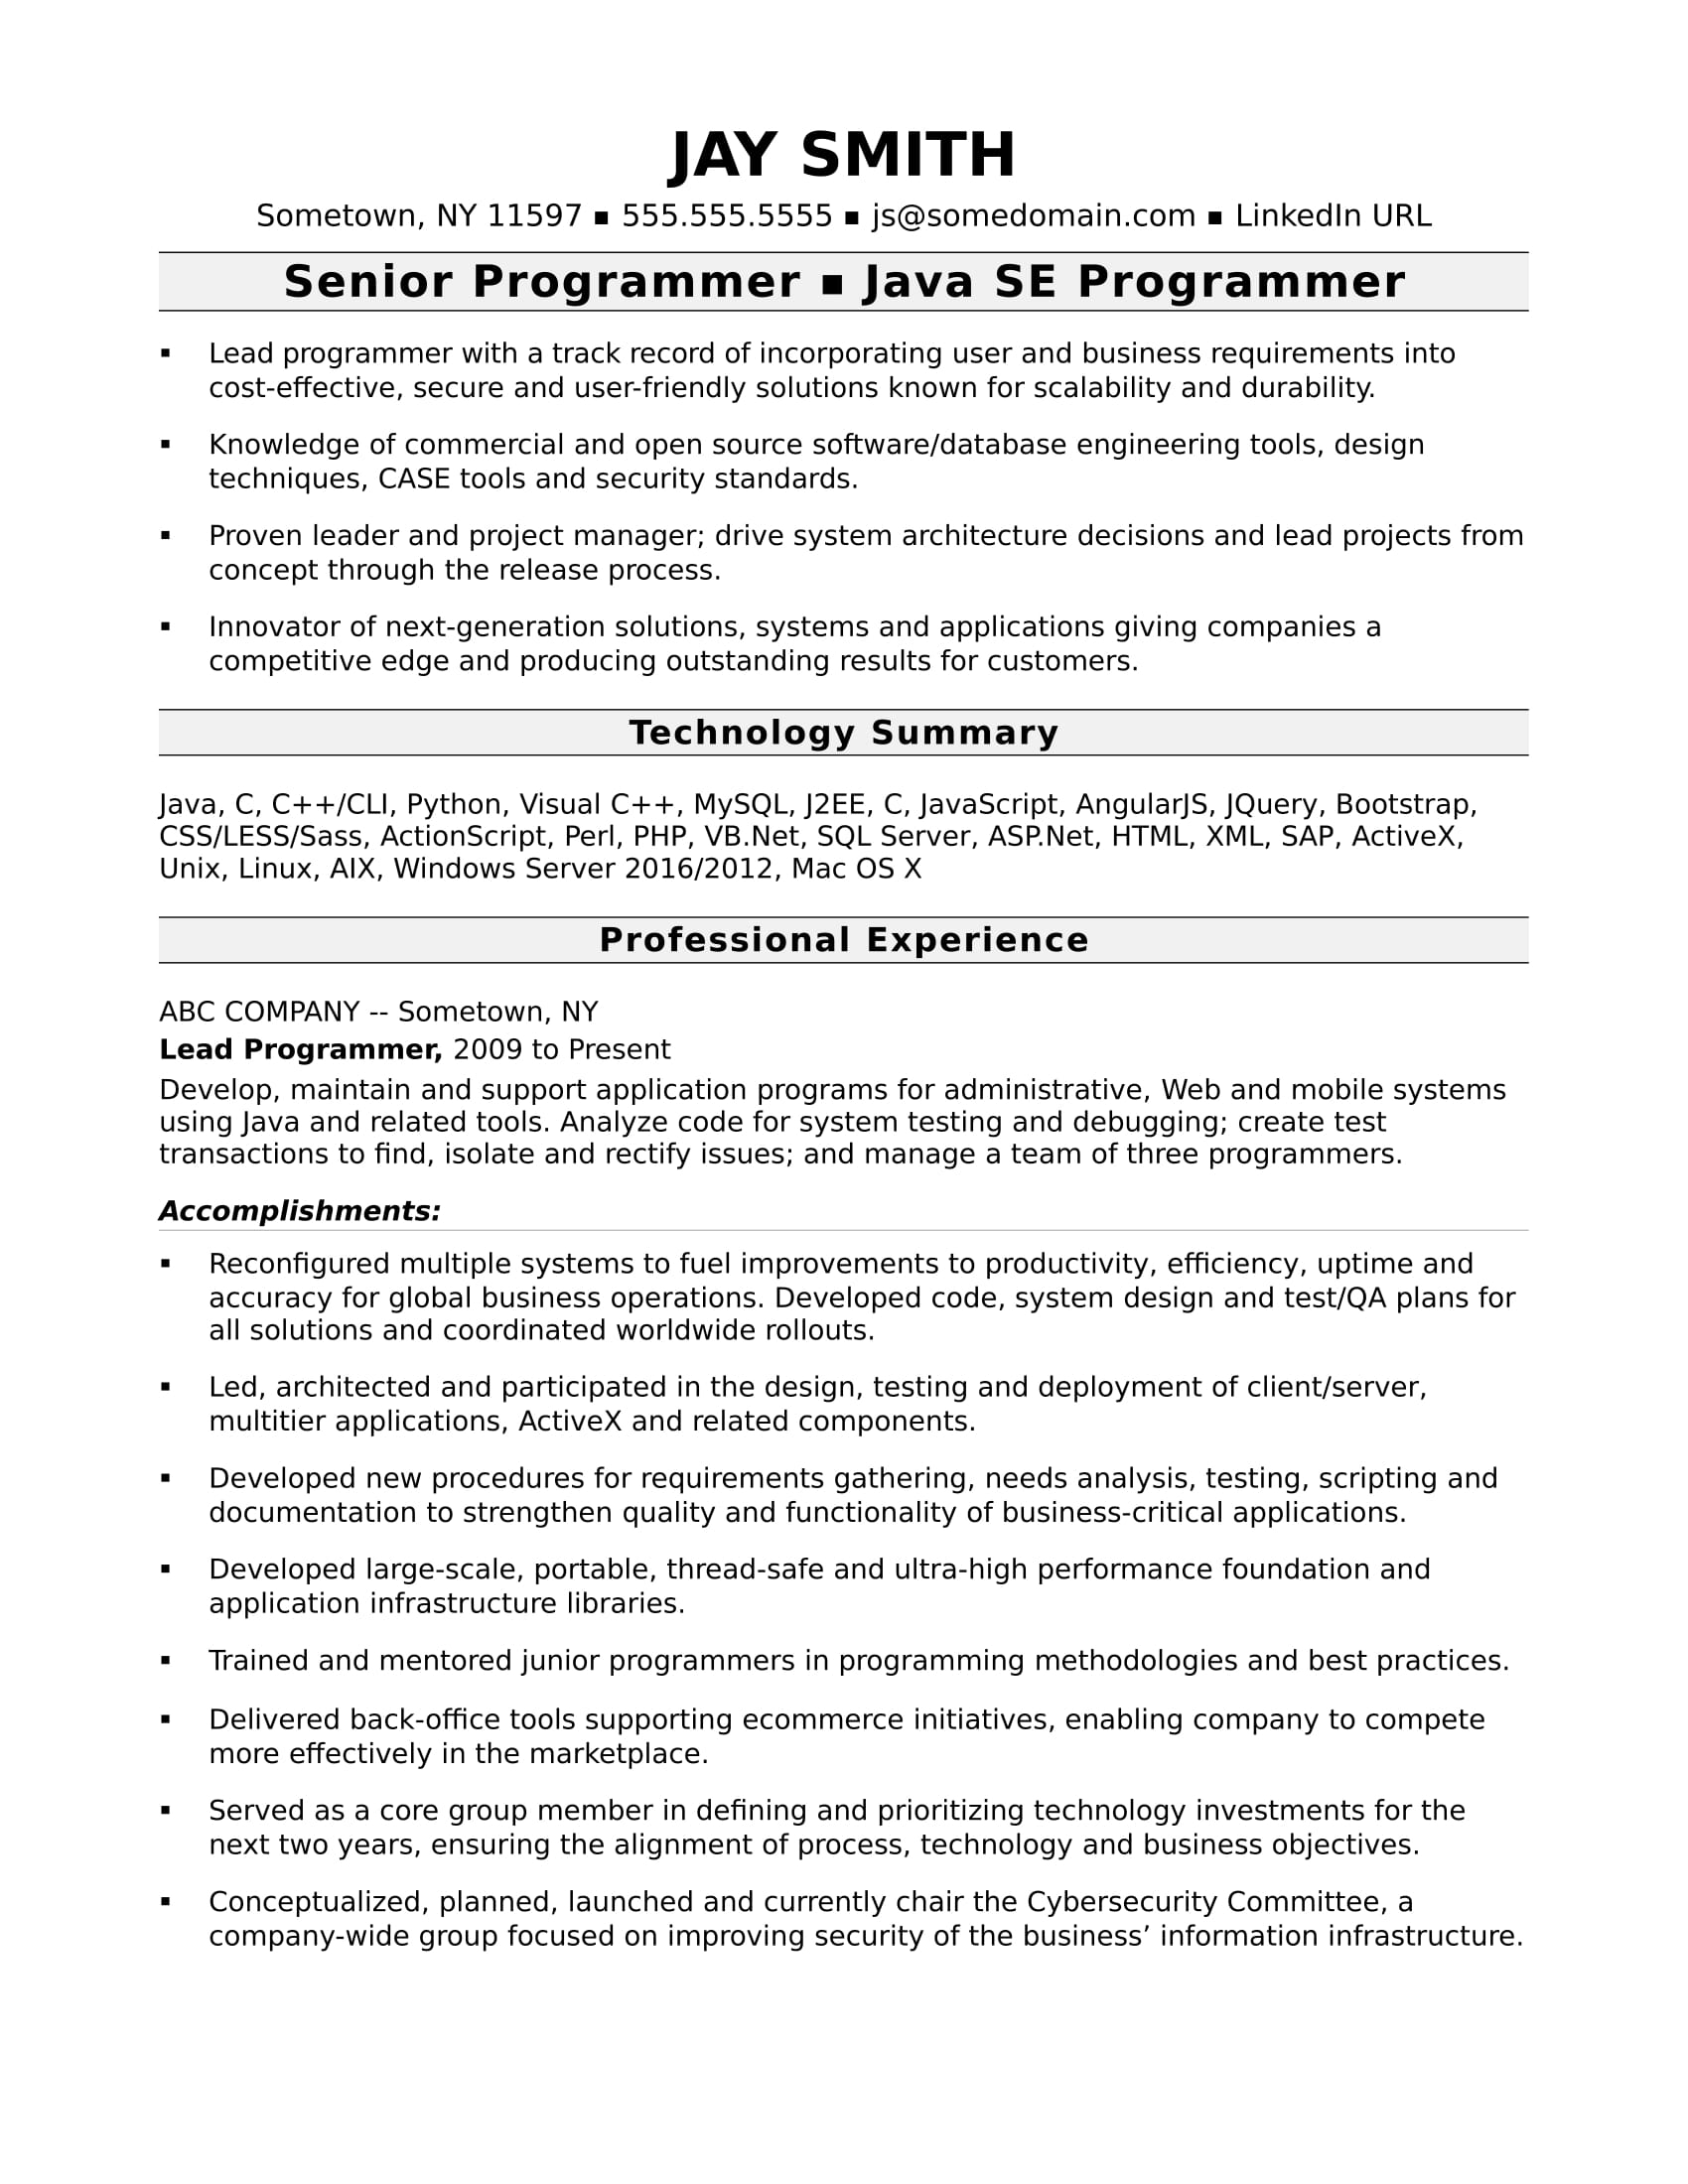 Sample Resume For An Experienced Computer Programmer